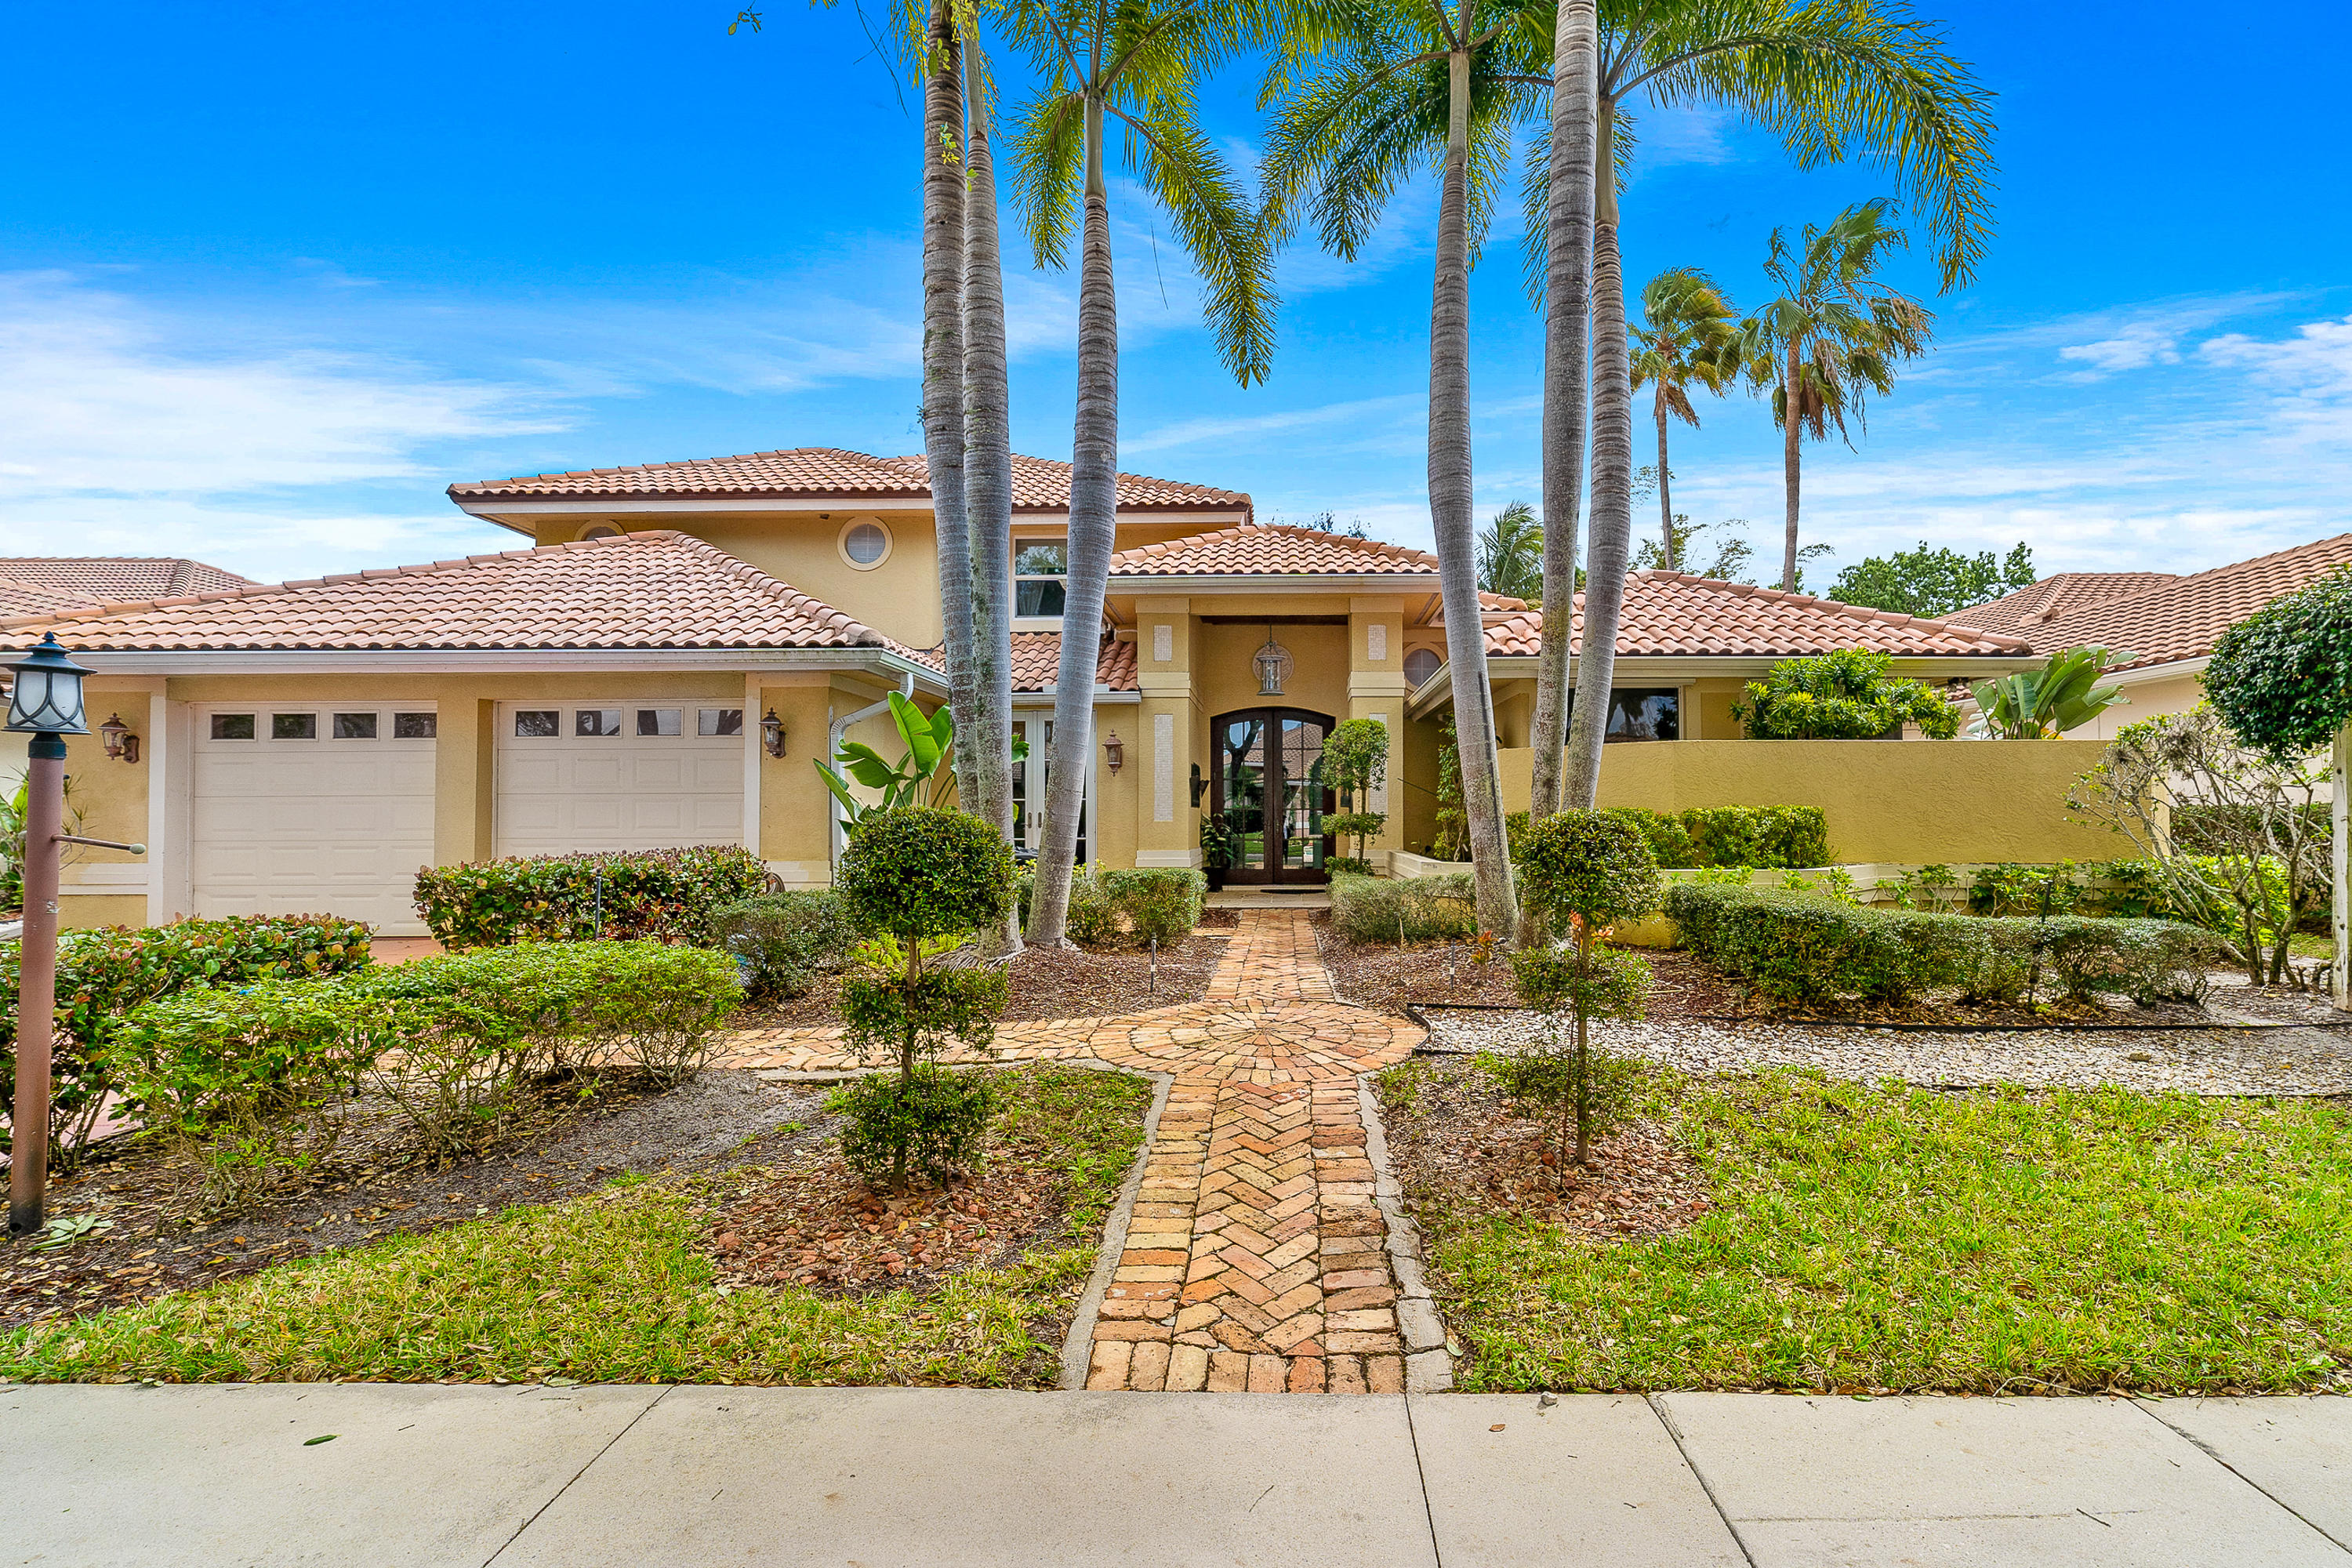 Home for sale in The Shores Jupiter Florida